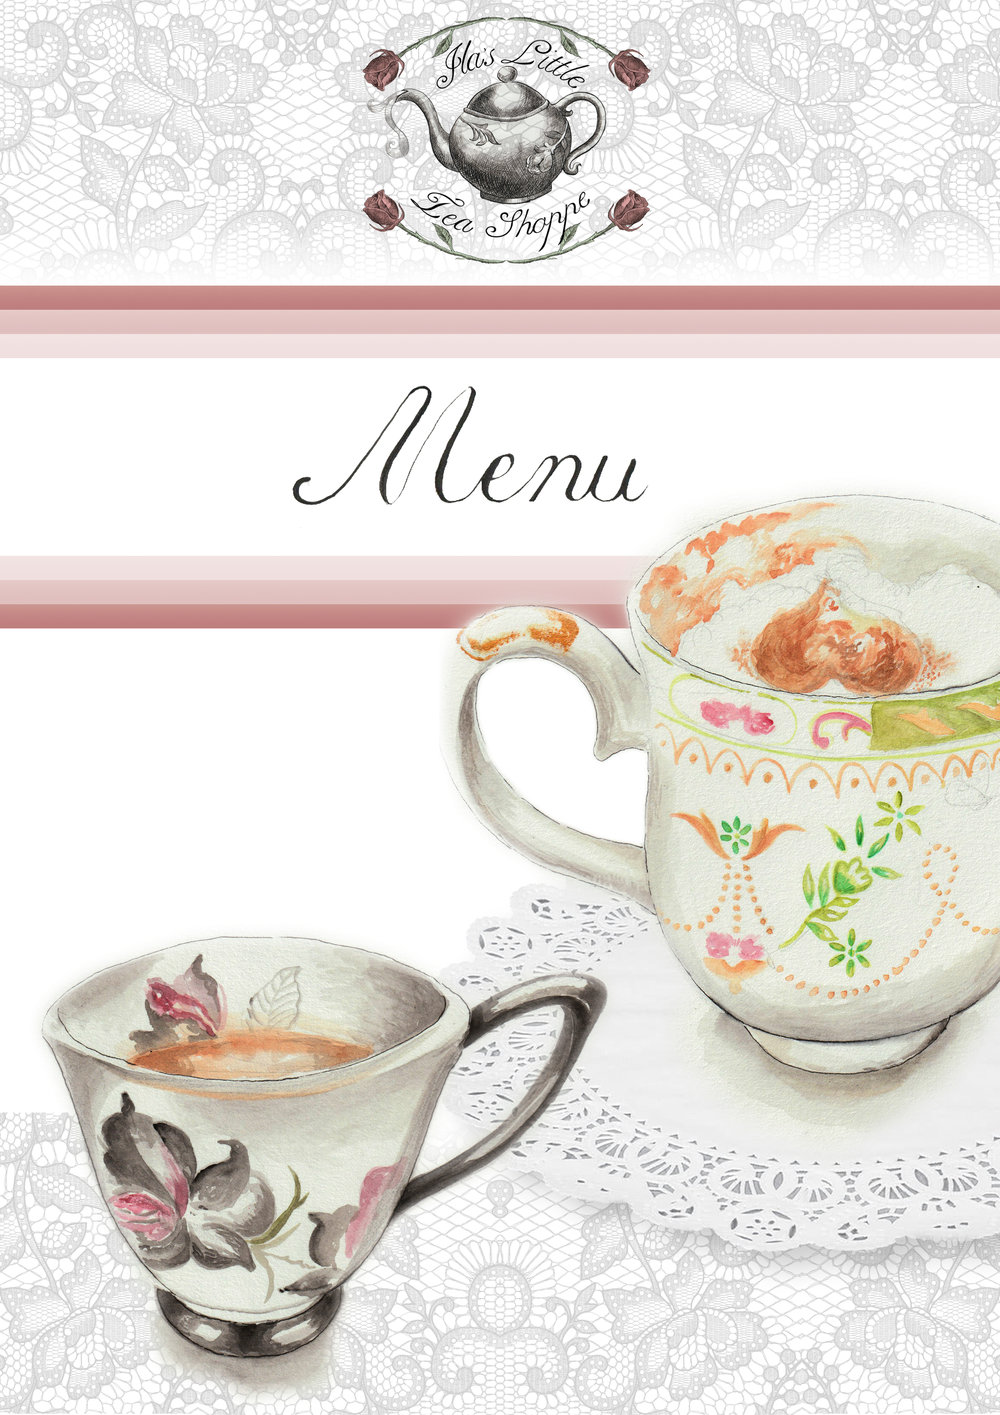 Here is my selected menu concept cover for Ila's shop, utilizing a new logo design with refinement to the illustration as well. The illustrations give flavour and bite, inspired by the menus from Betty's I desired to have hand-designed aspects present on it.